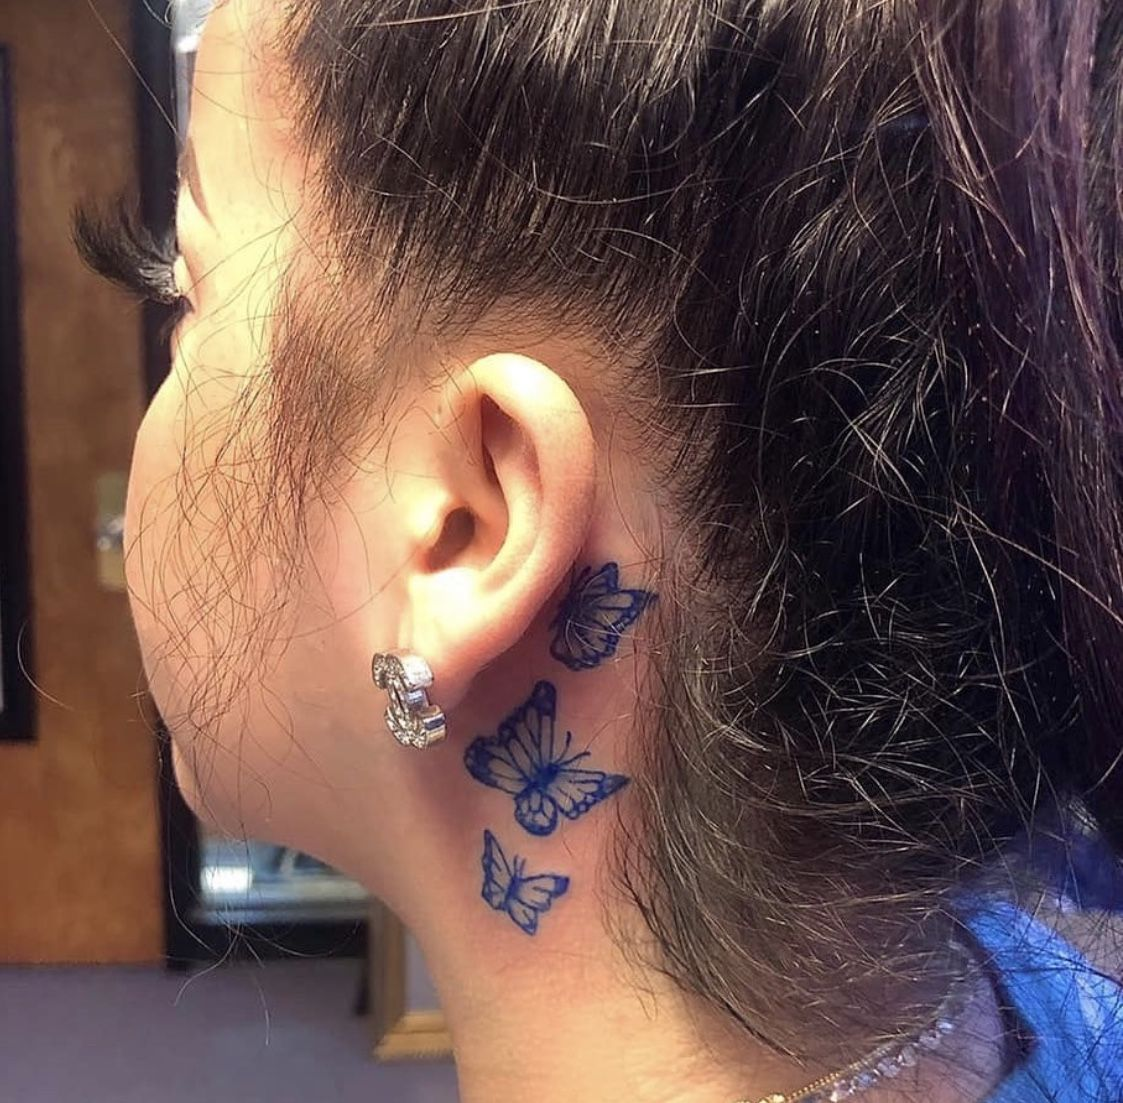 Pin By Alexis Tennis On Tat In 2020 Neck Tattoos Women Girl Neck Tattoos Girly Tattoos